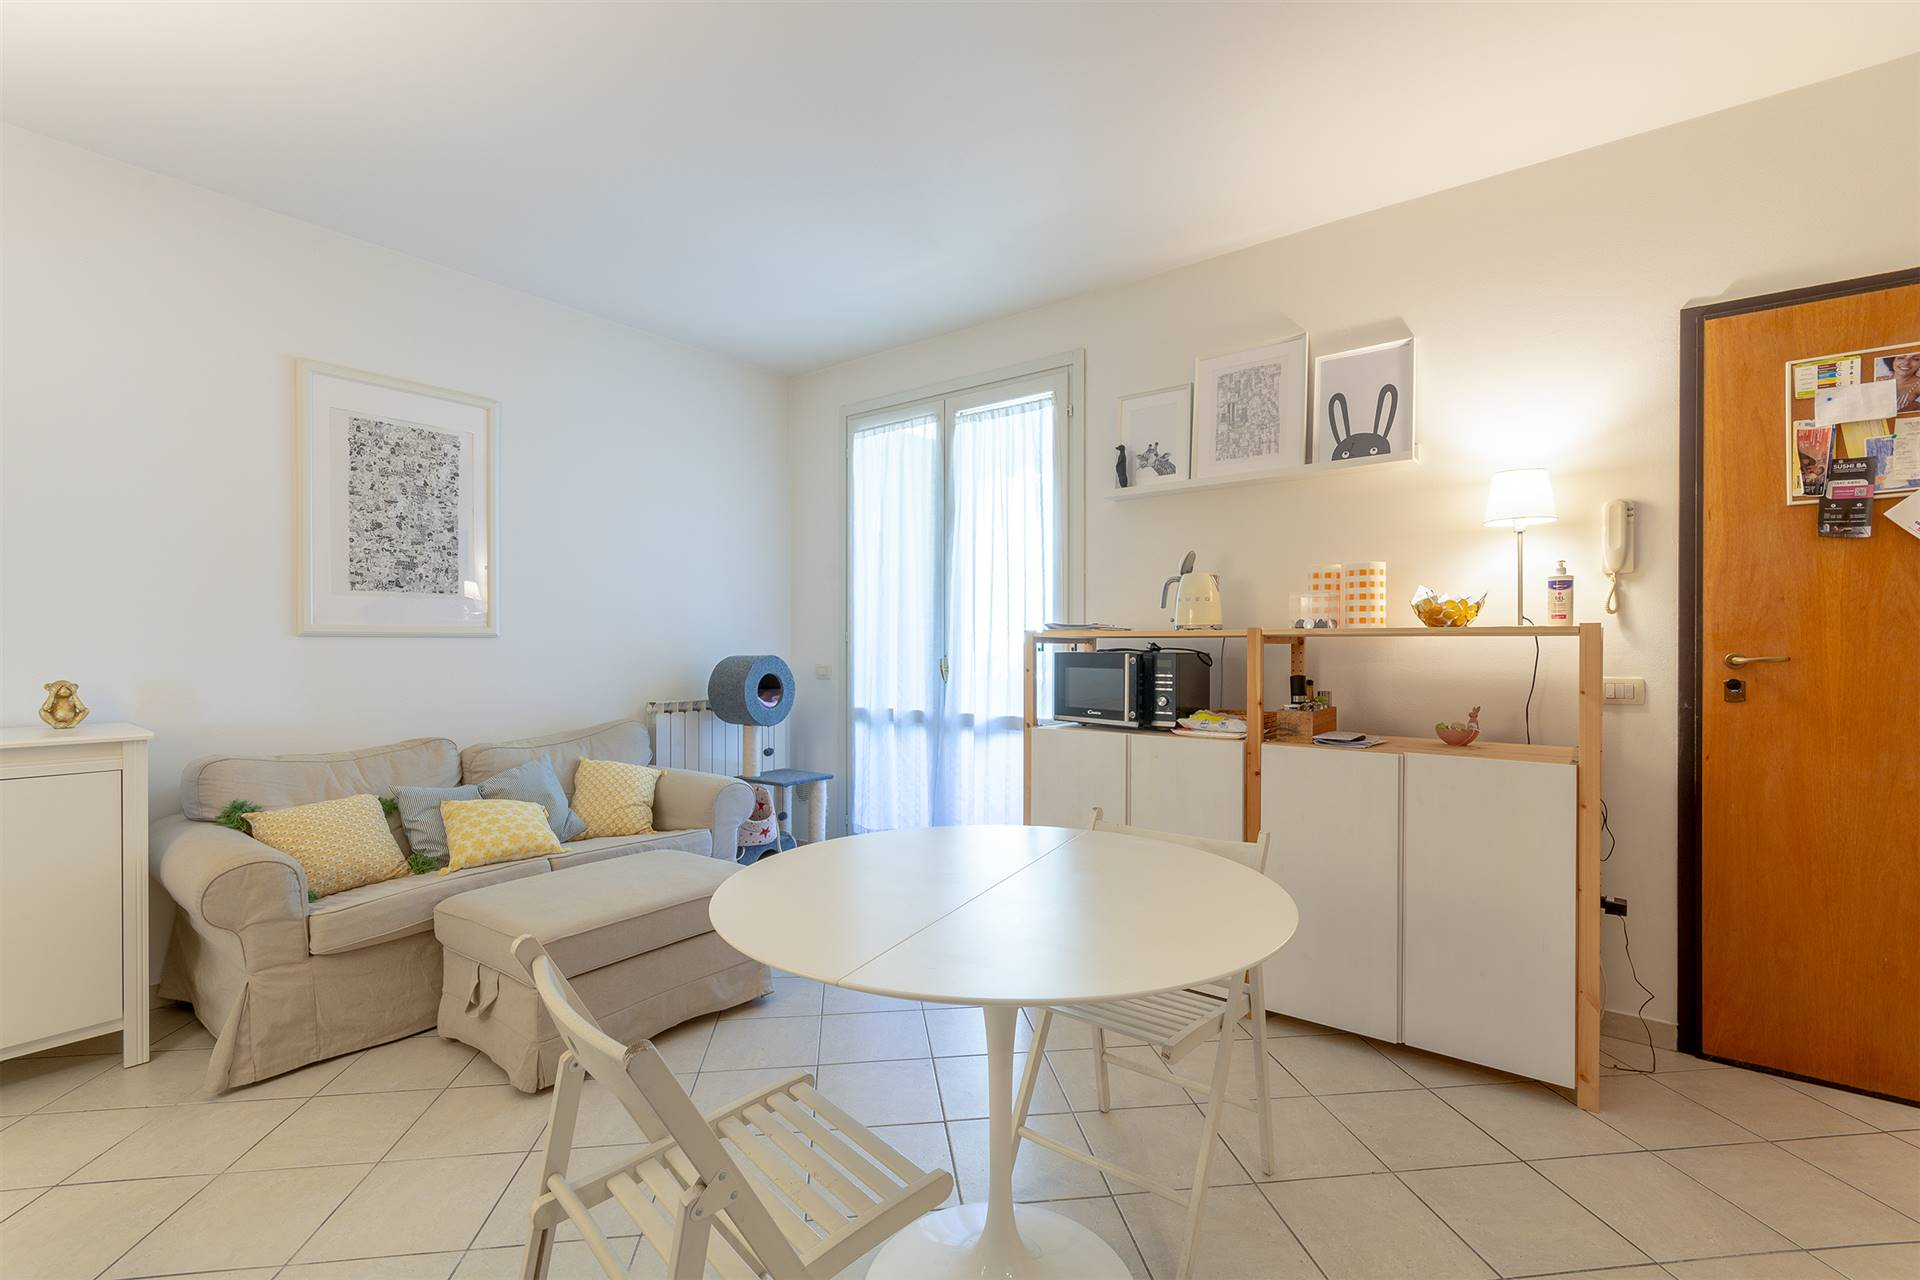 SAN PIERO A PONTI, SIGNA, Apartment for sale, Excellent Condition, Heating Individual heating system, Energetic class: F, Epi: 131,8 kwh/m2 year,